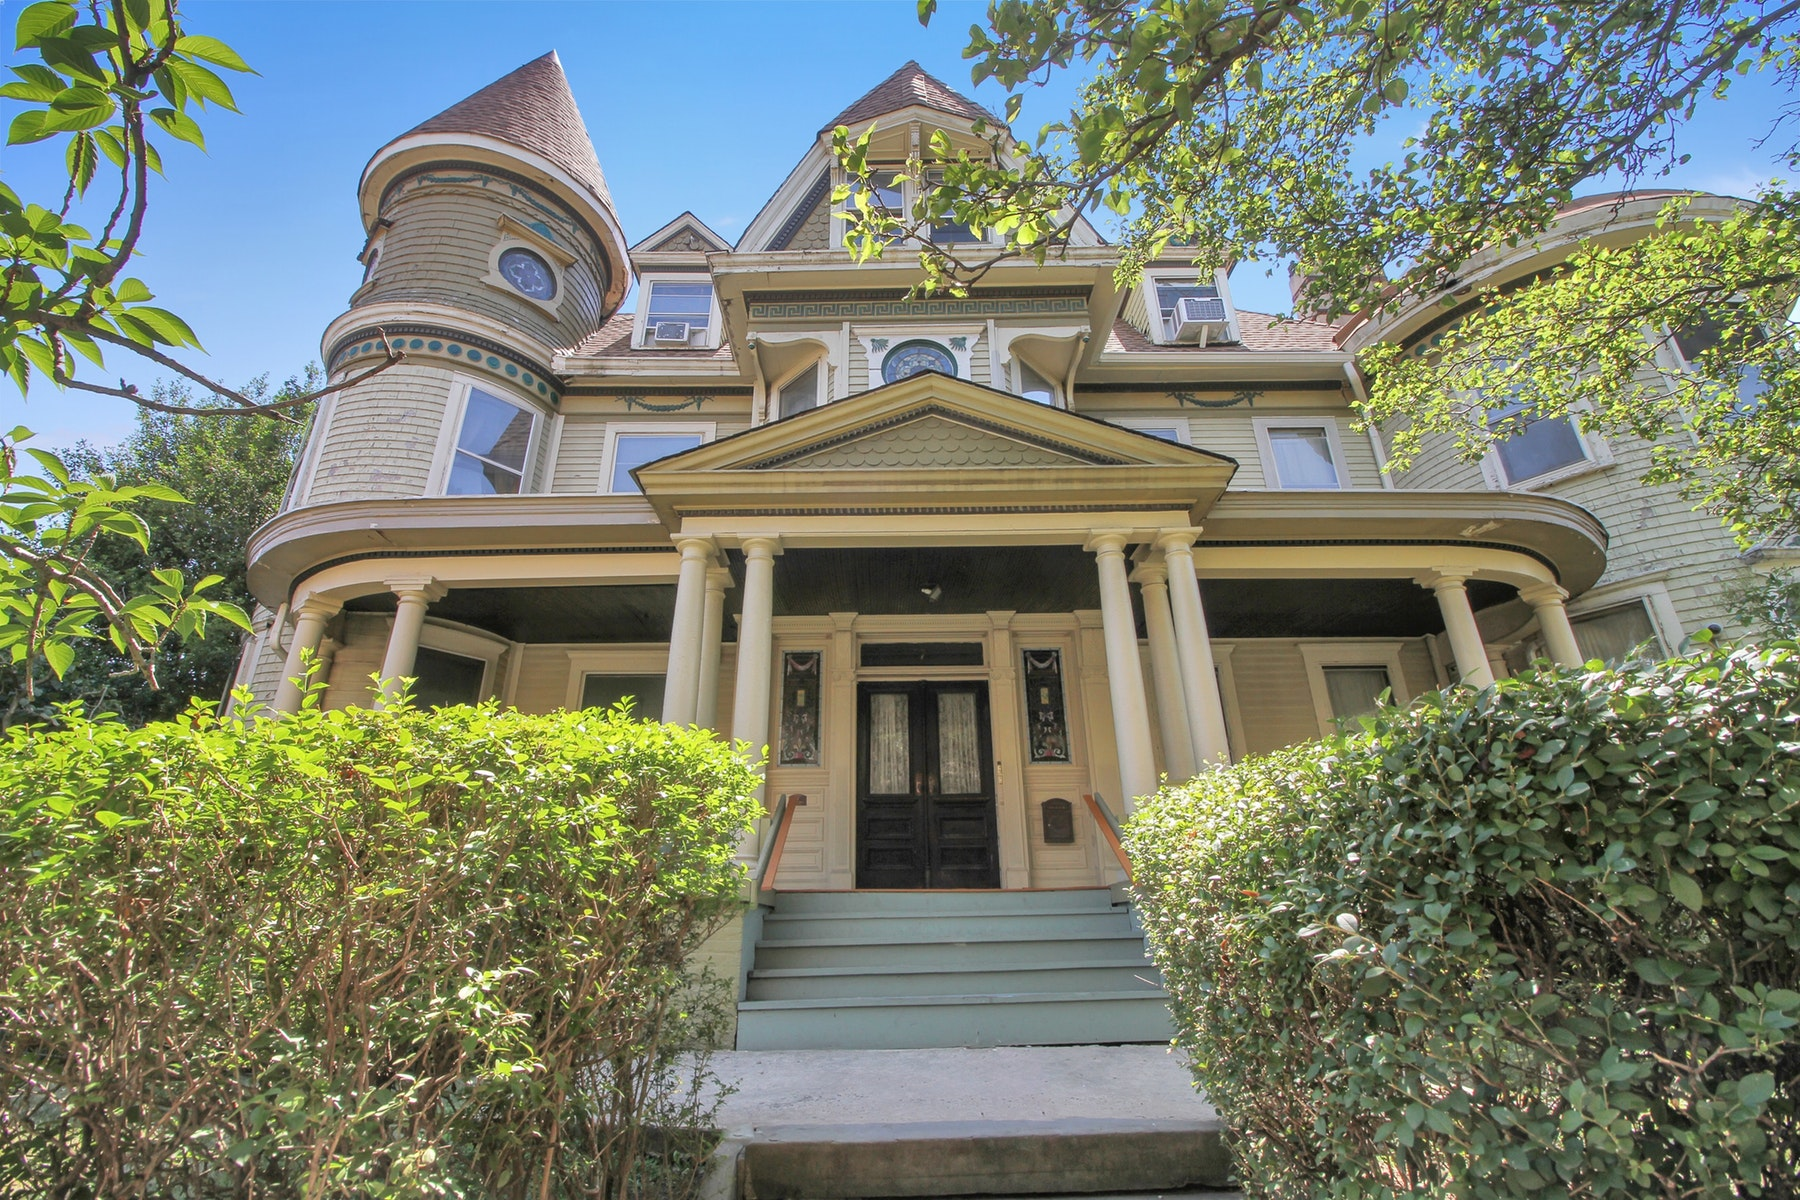 Multi-Family Home for Sale at Award Winning Victorian 4 Family Home 7 Kensington Ave, Jersey City, New Jersey 07304 United States